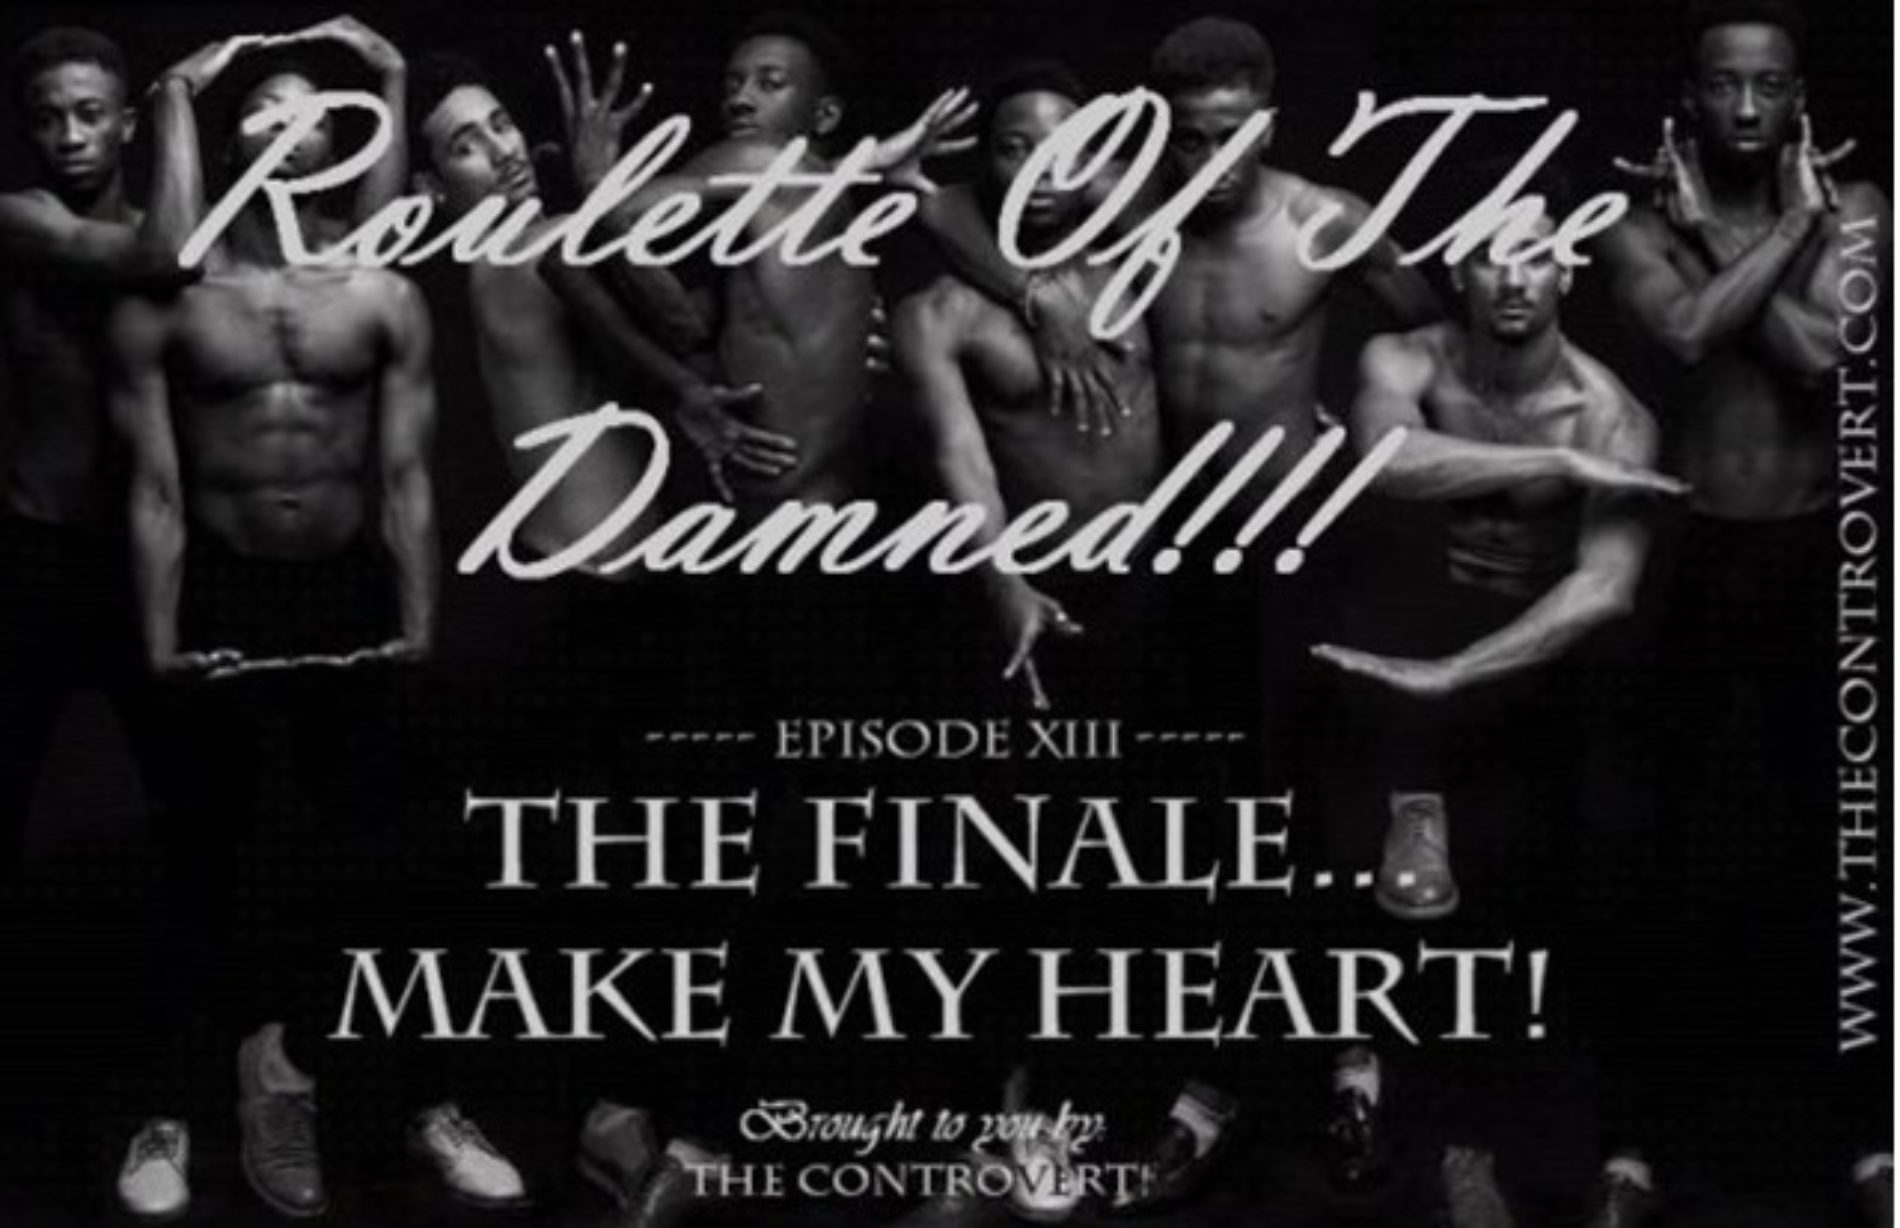 ROULETTE OF THE DAMNED 20: Make My Heart